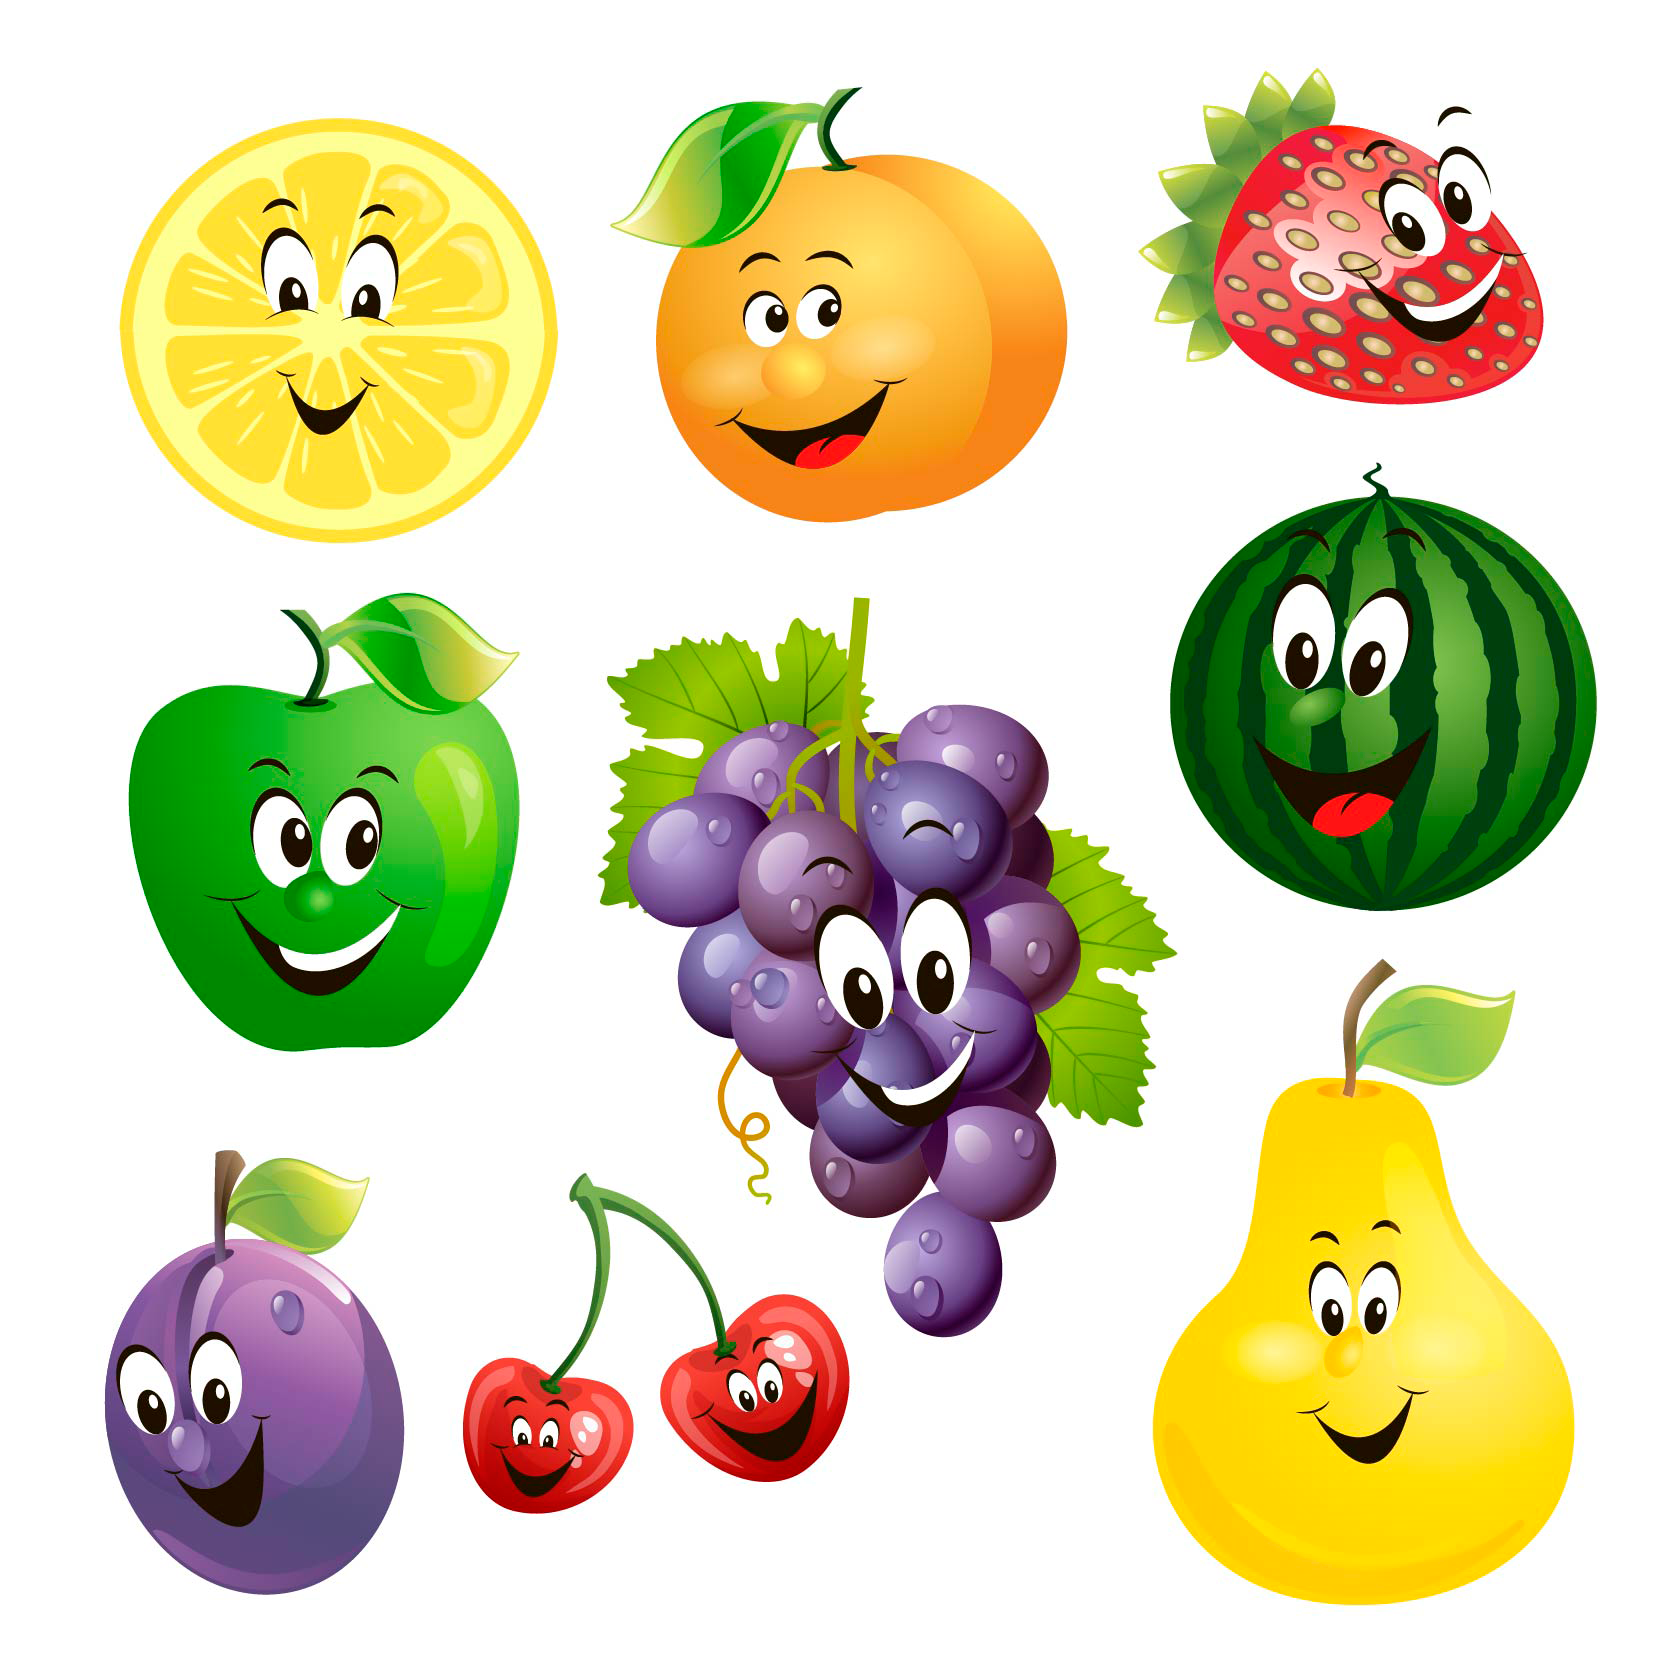 Download 50 Free Vector Fruits Vegetables Icons Fruit Picture Vegetable Pictures Fruit Clipart